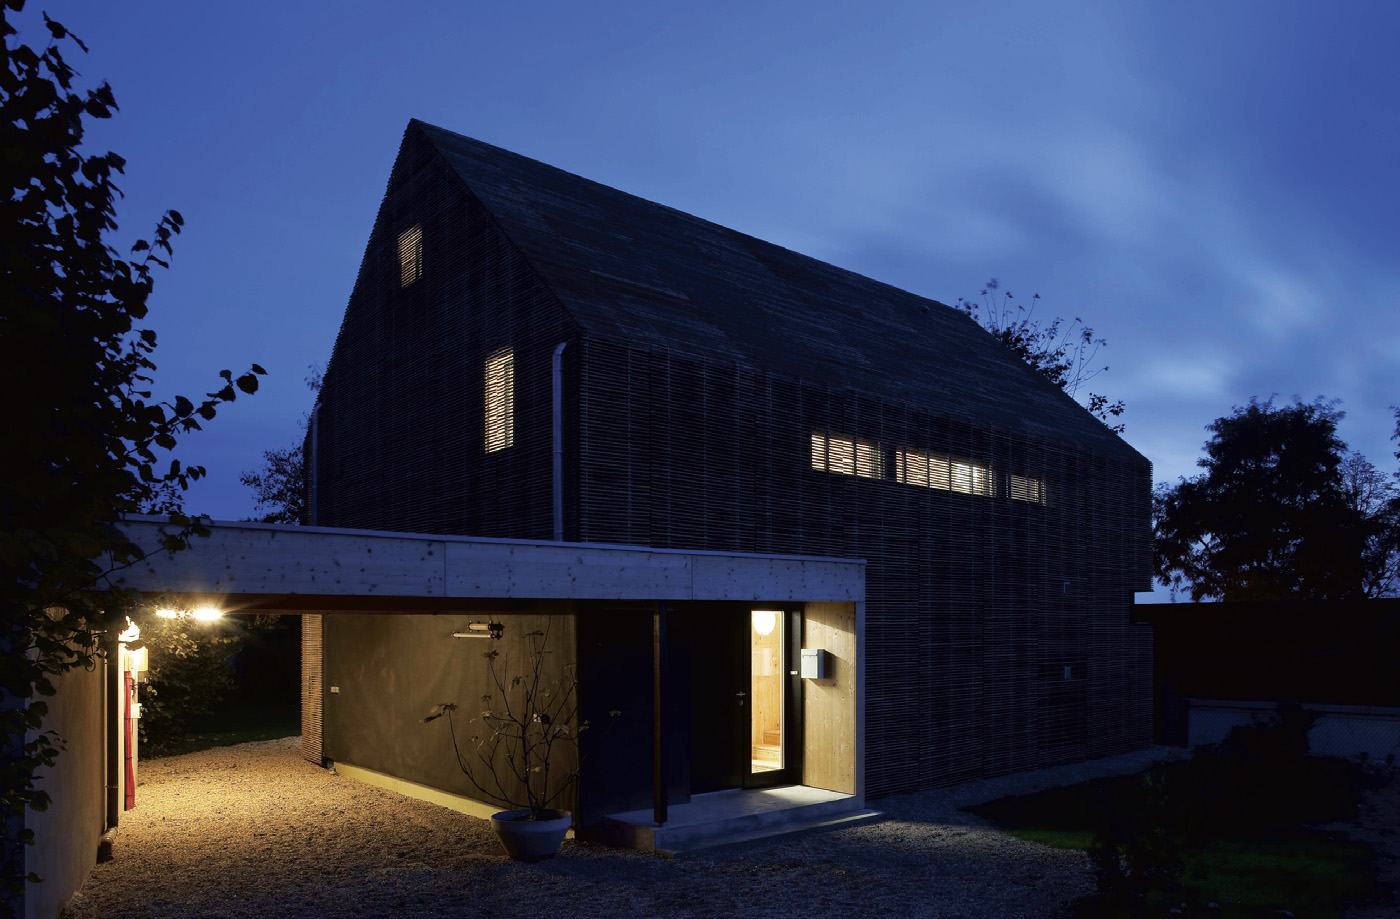 Glazing in the Bessancourt passive house is limited on the north face